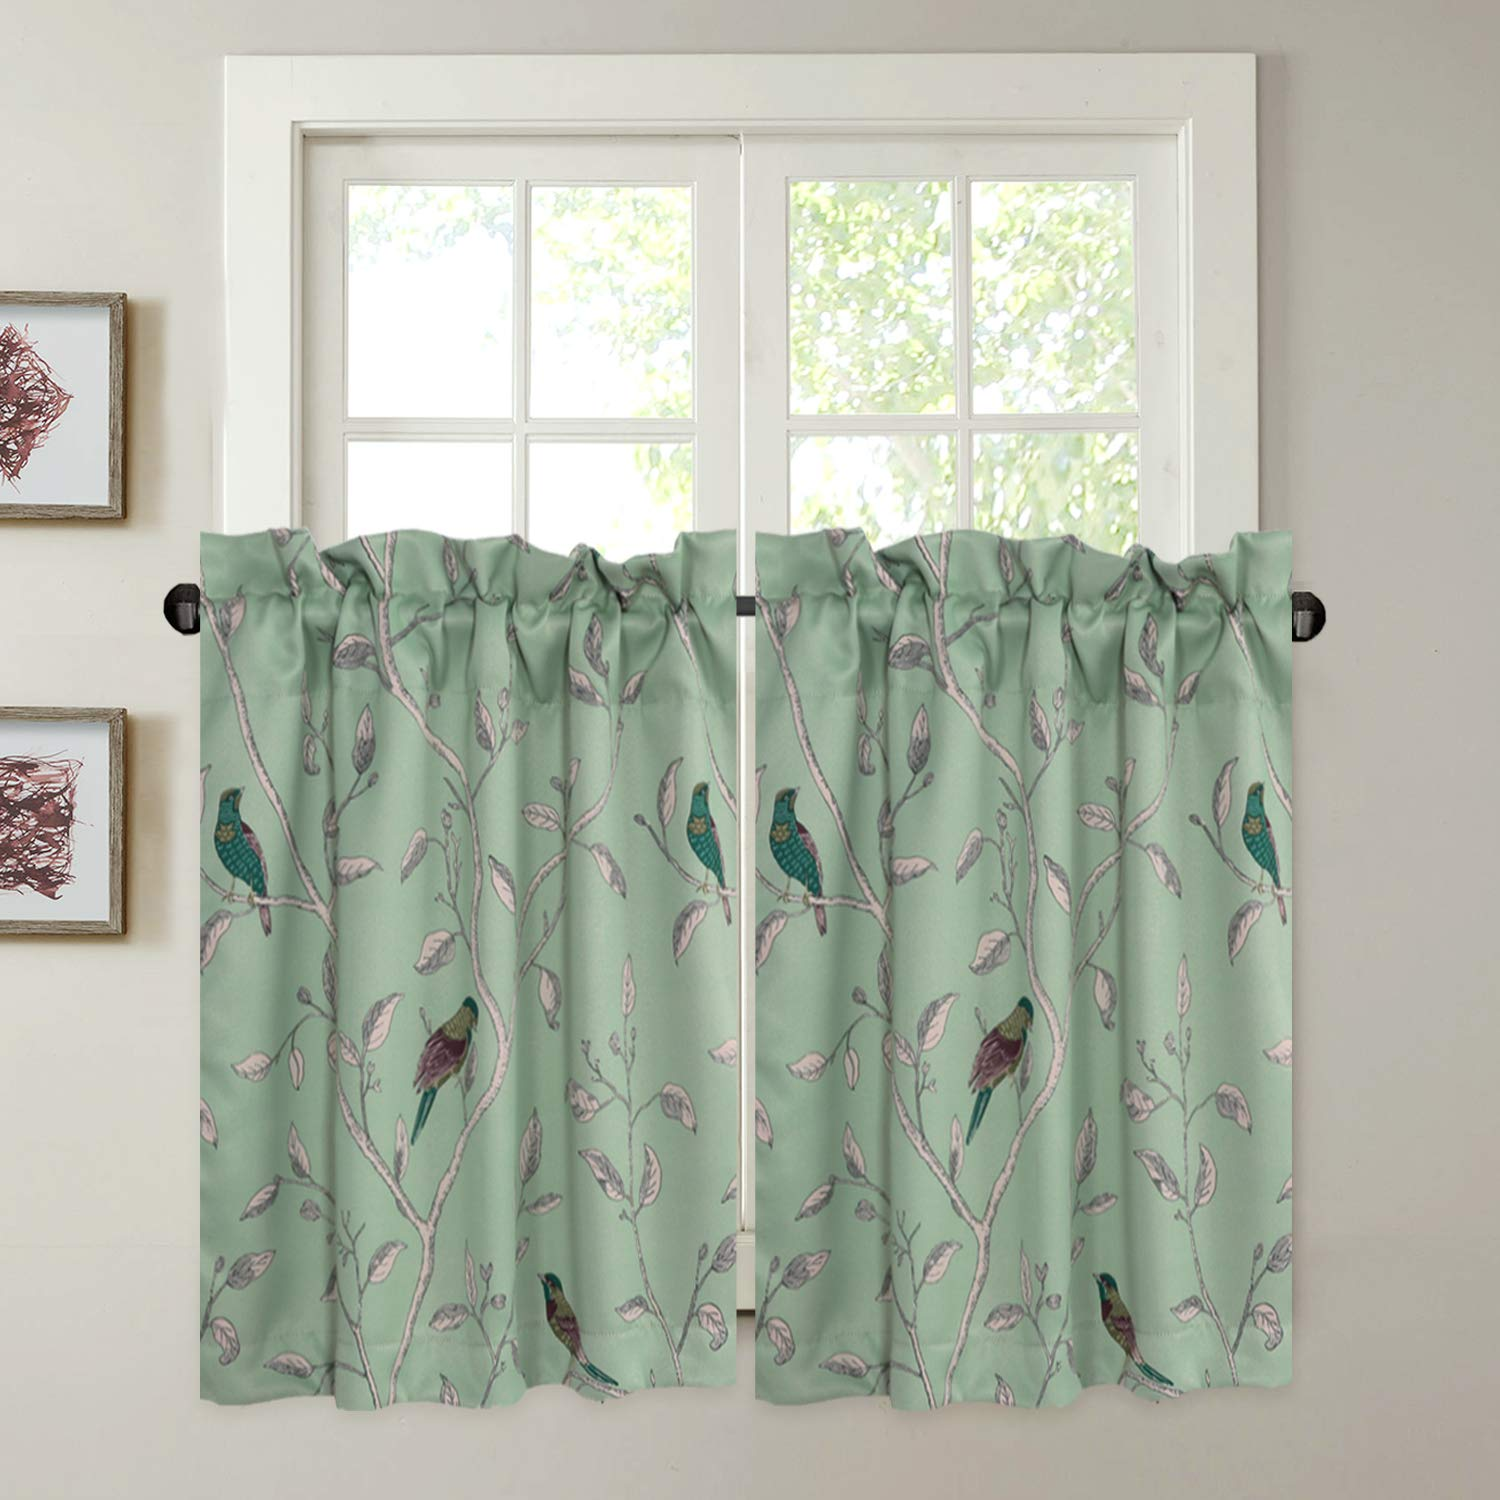 H.VERSAILTEX Ultra Soft Textured Woven Kitchen Curtains Rod Pocket Window  Curtain Tiers for Café/Bath/Laundry/Bedroom - Sage Green Base with  Turquoise ...